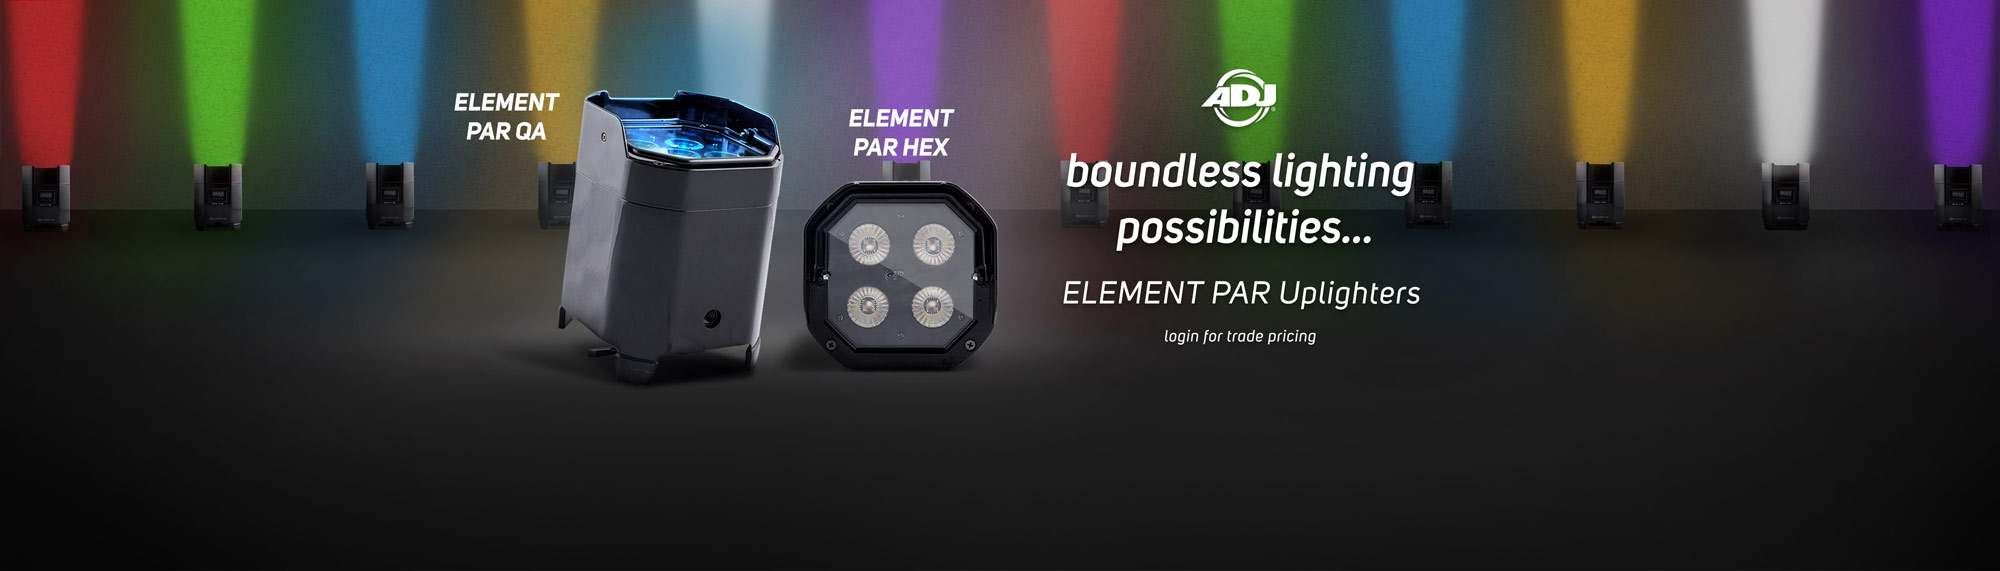 18-02-07 ADJ - Element Par IP Series